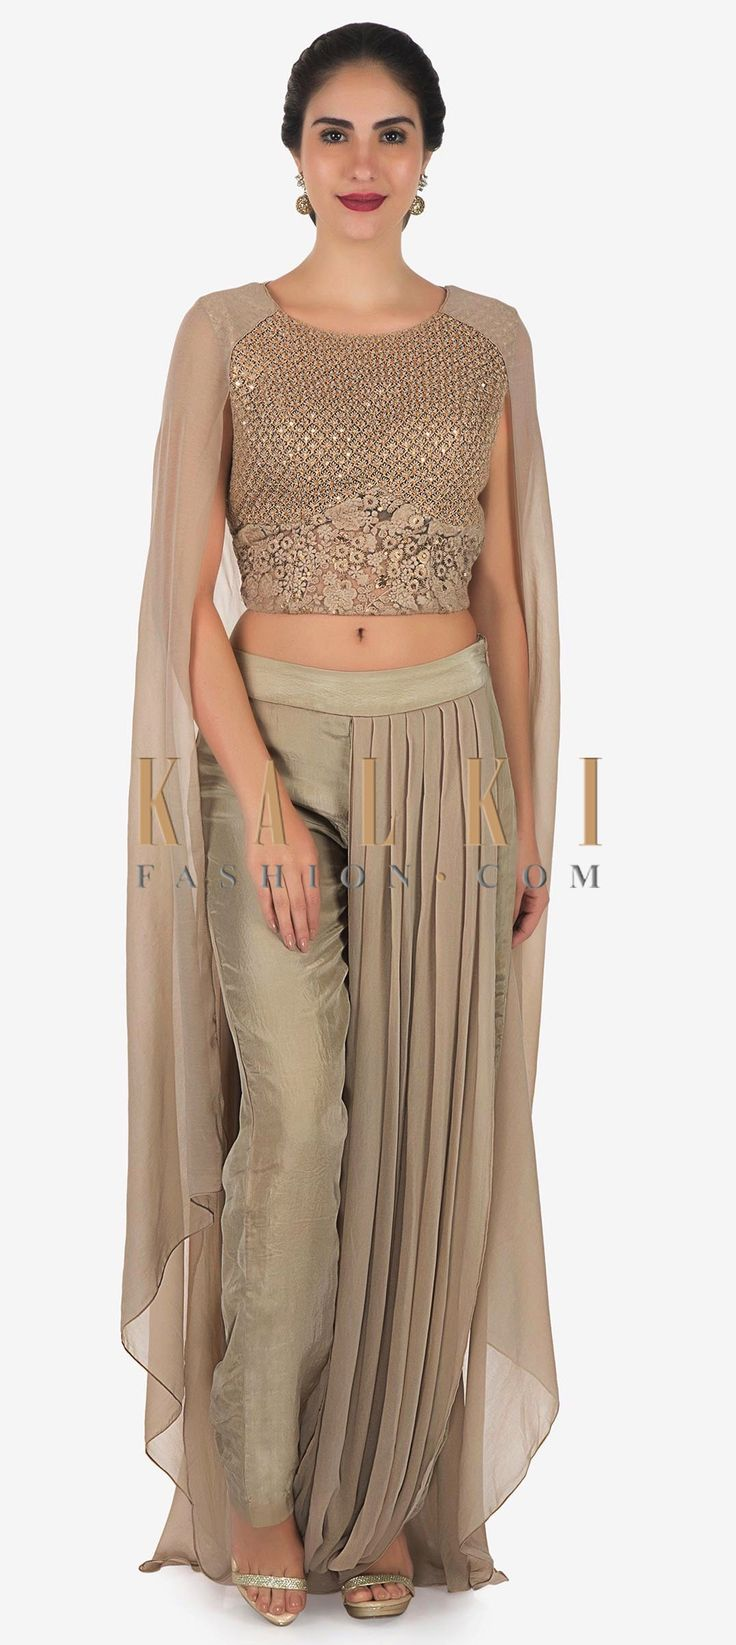 Buy Online from the link below. We ship worldwide Click Anywhere to Tag Palak Tiwari in Kalki grey crop top with drape palazzo suit with fancy cape ‌Featuring grey crop top in net embellished in resham and sequin embroidery. Matched with drape palazzo pant in georgette. It comes with fancy attach batman sleeve at the shoulder in georgette. Celebrity- Palak Tiwari. Slight variation in color is possible.